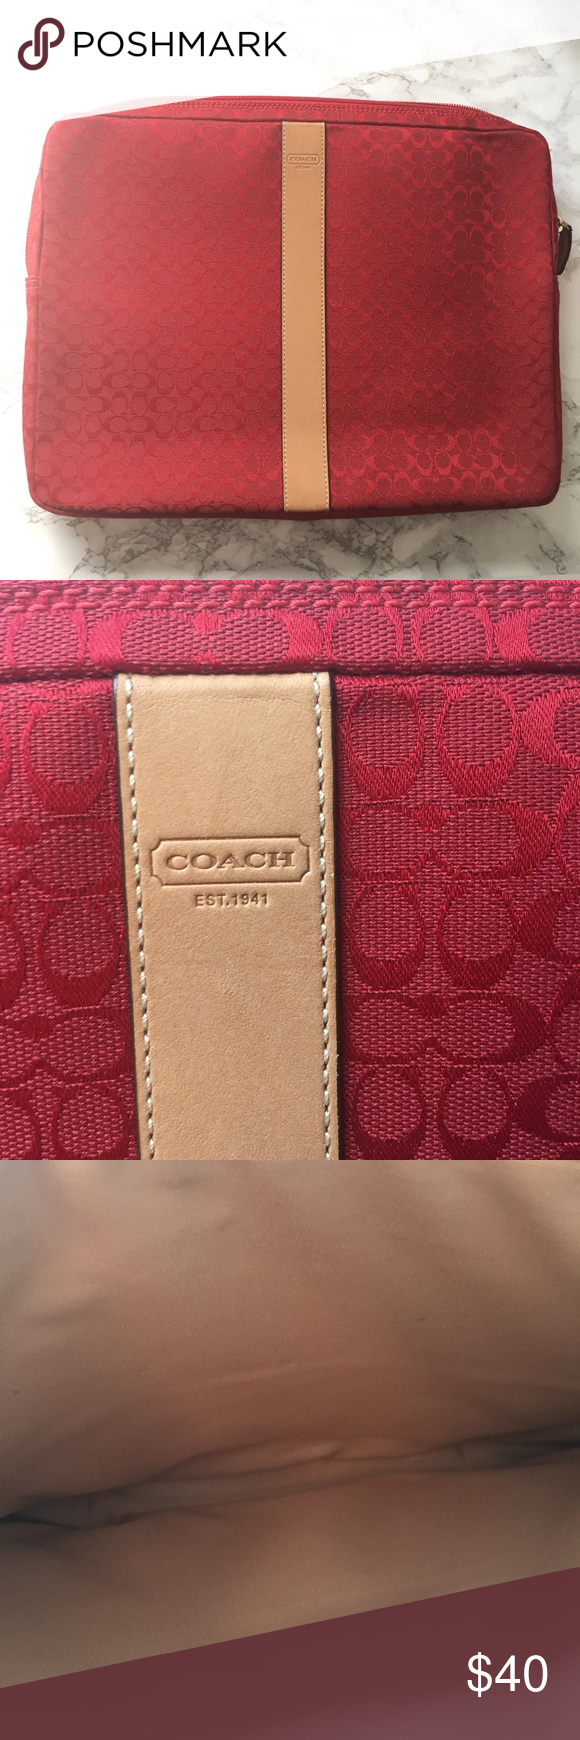 NWOT Coach Red and Tan 15 inch Laptop Sleeve NWOT Coach red and tan leather accents 15 inch laptop sleeve with tan interior. 100% authentic Coach Accessories Laptop Cases